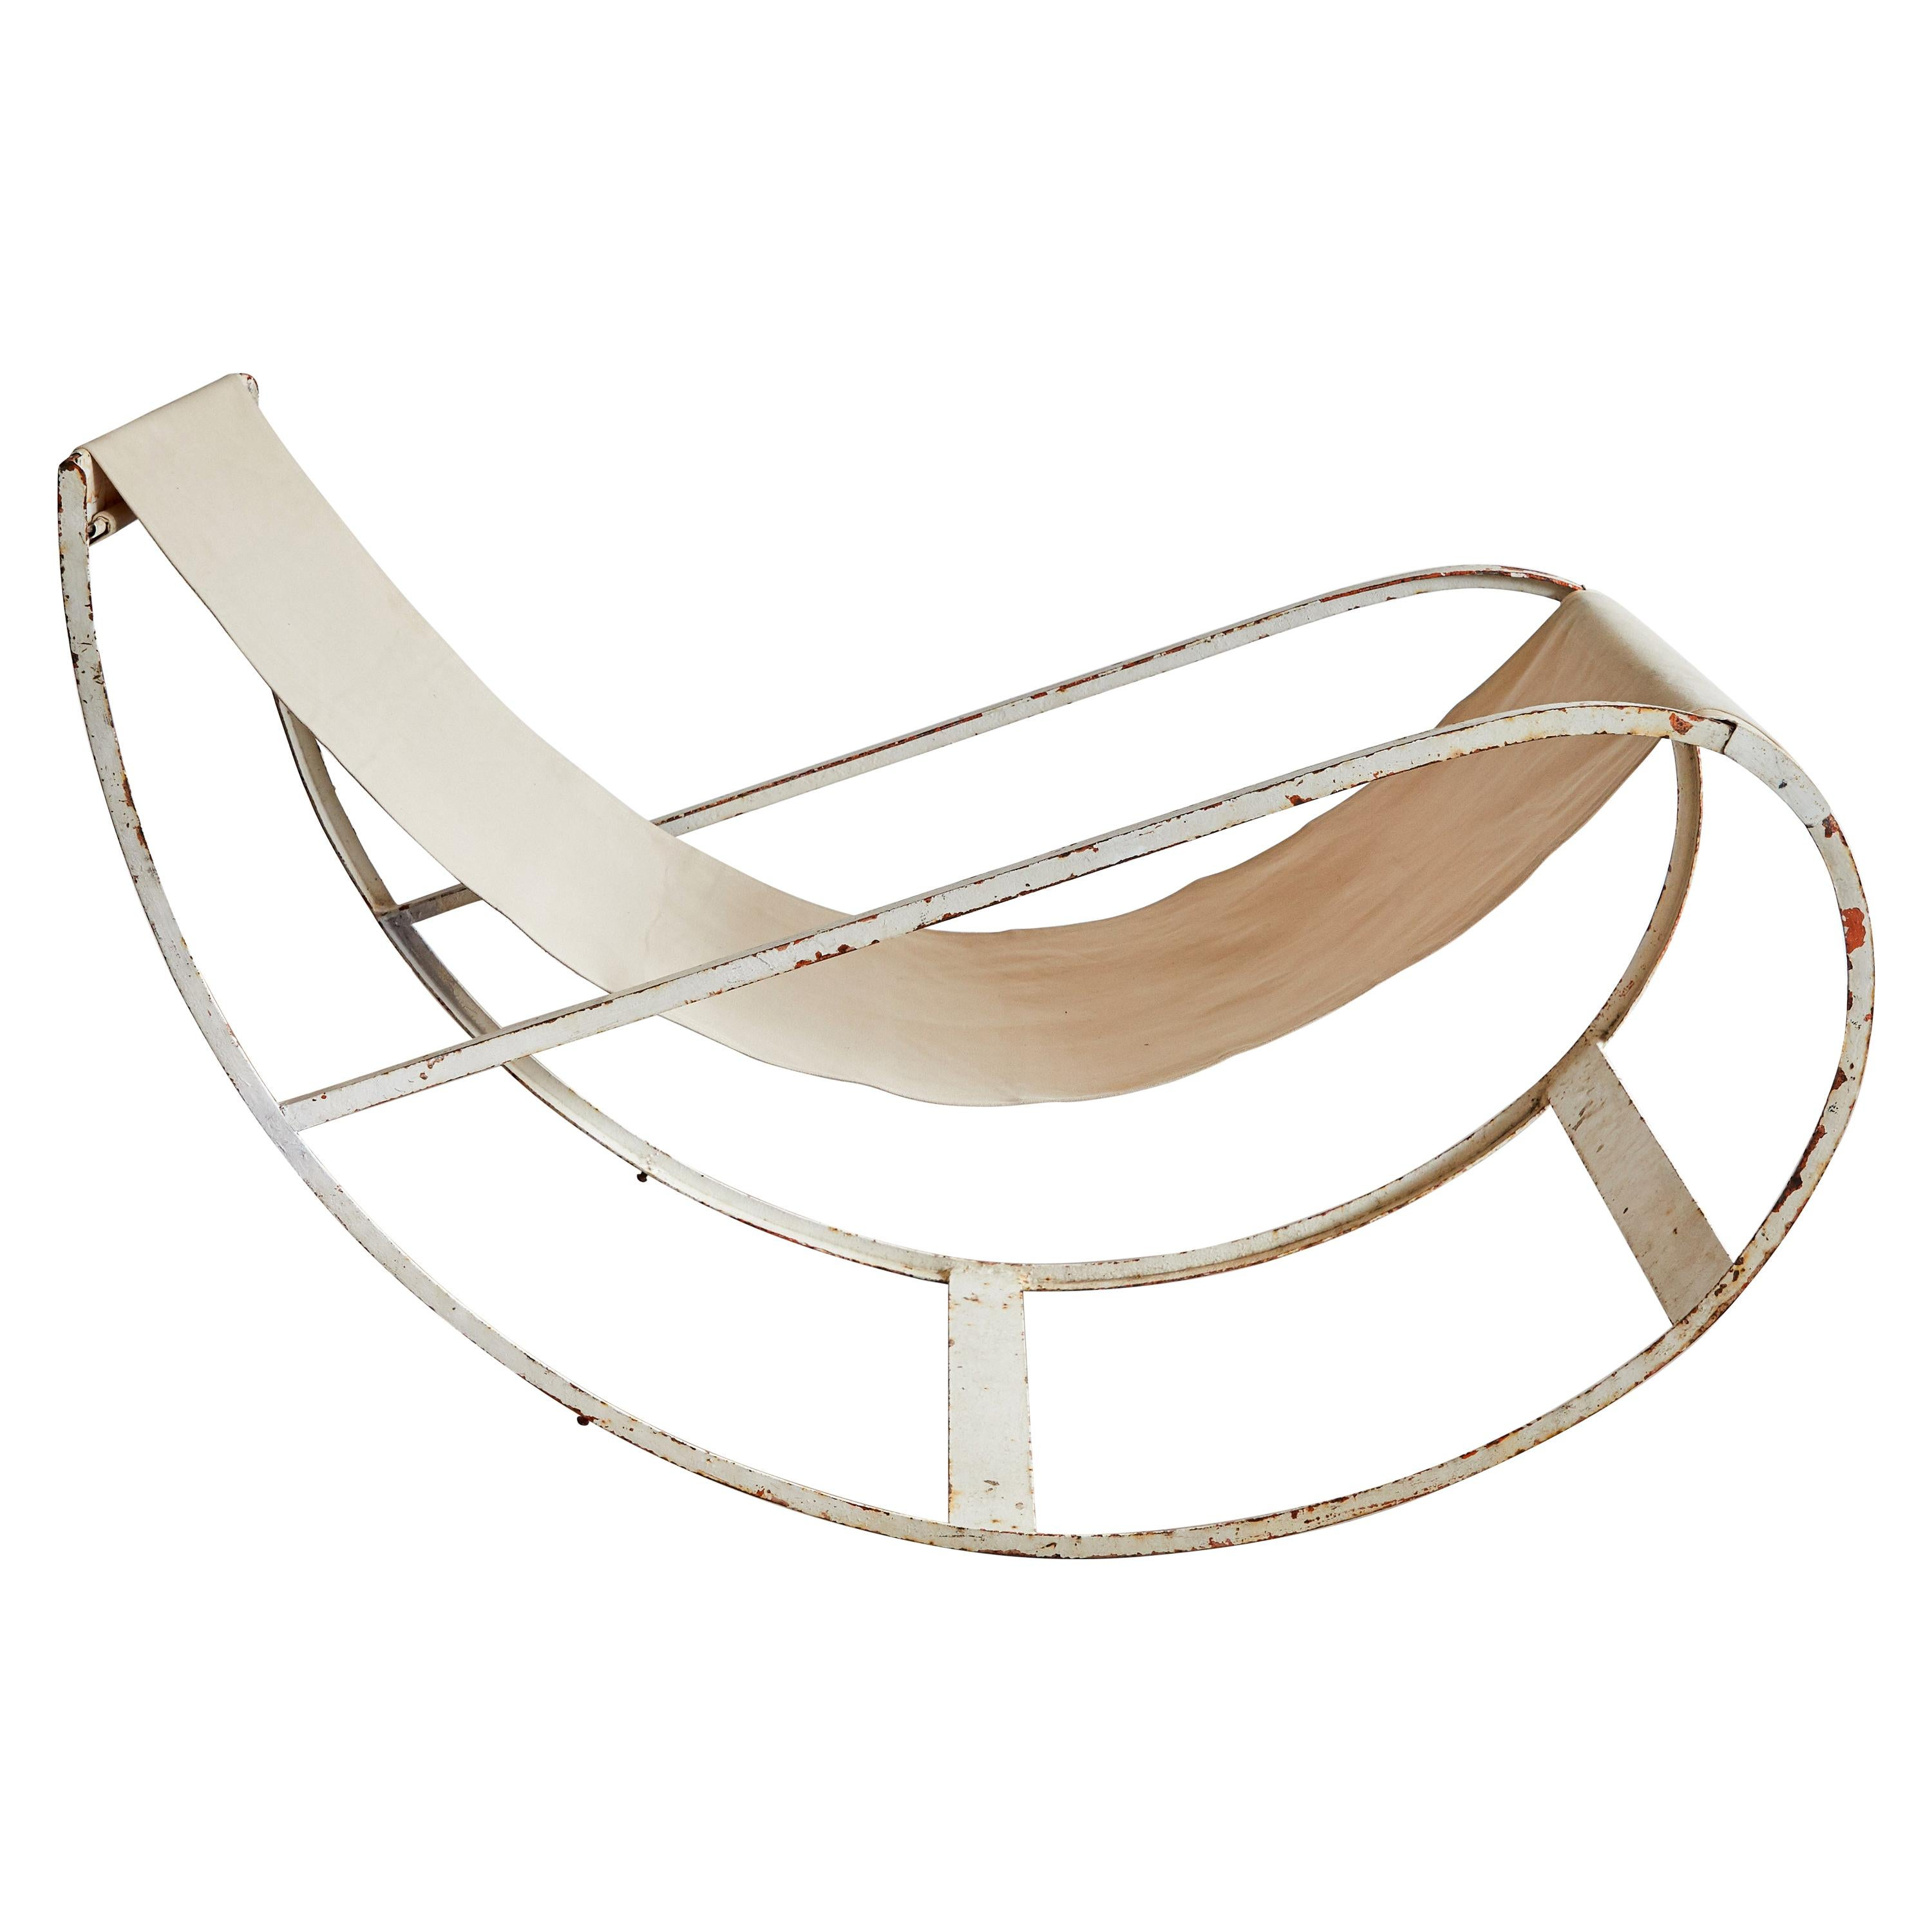 Rare Rocking Chair by François Turpin